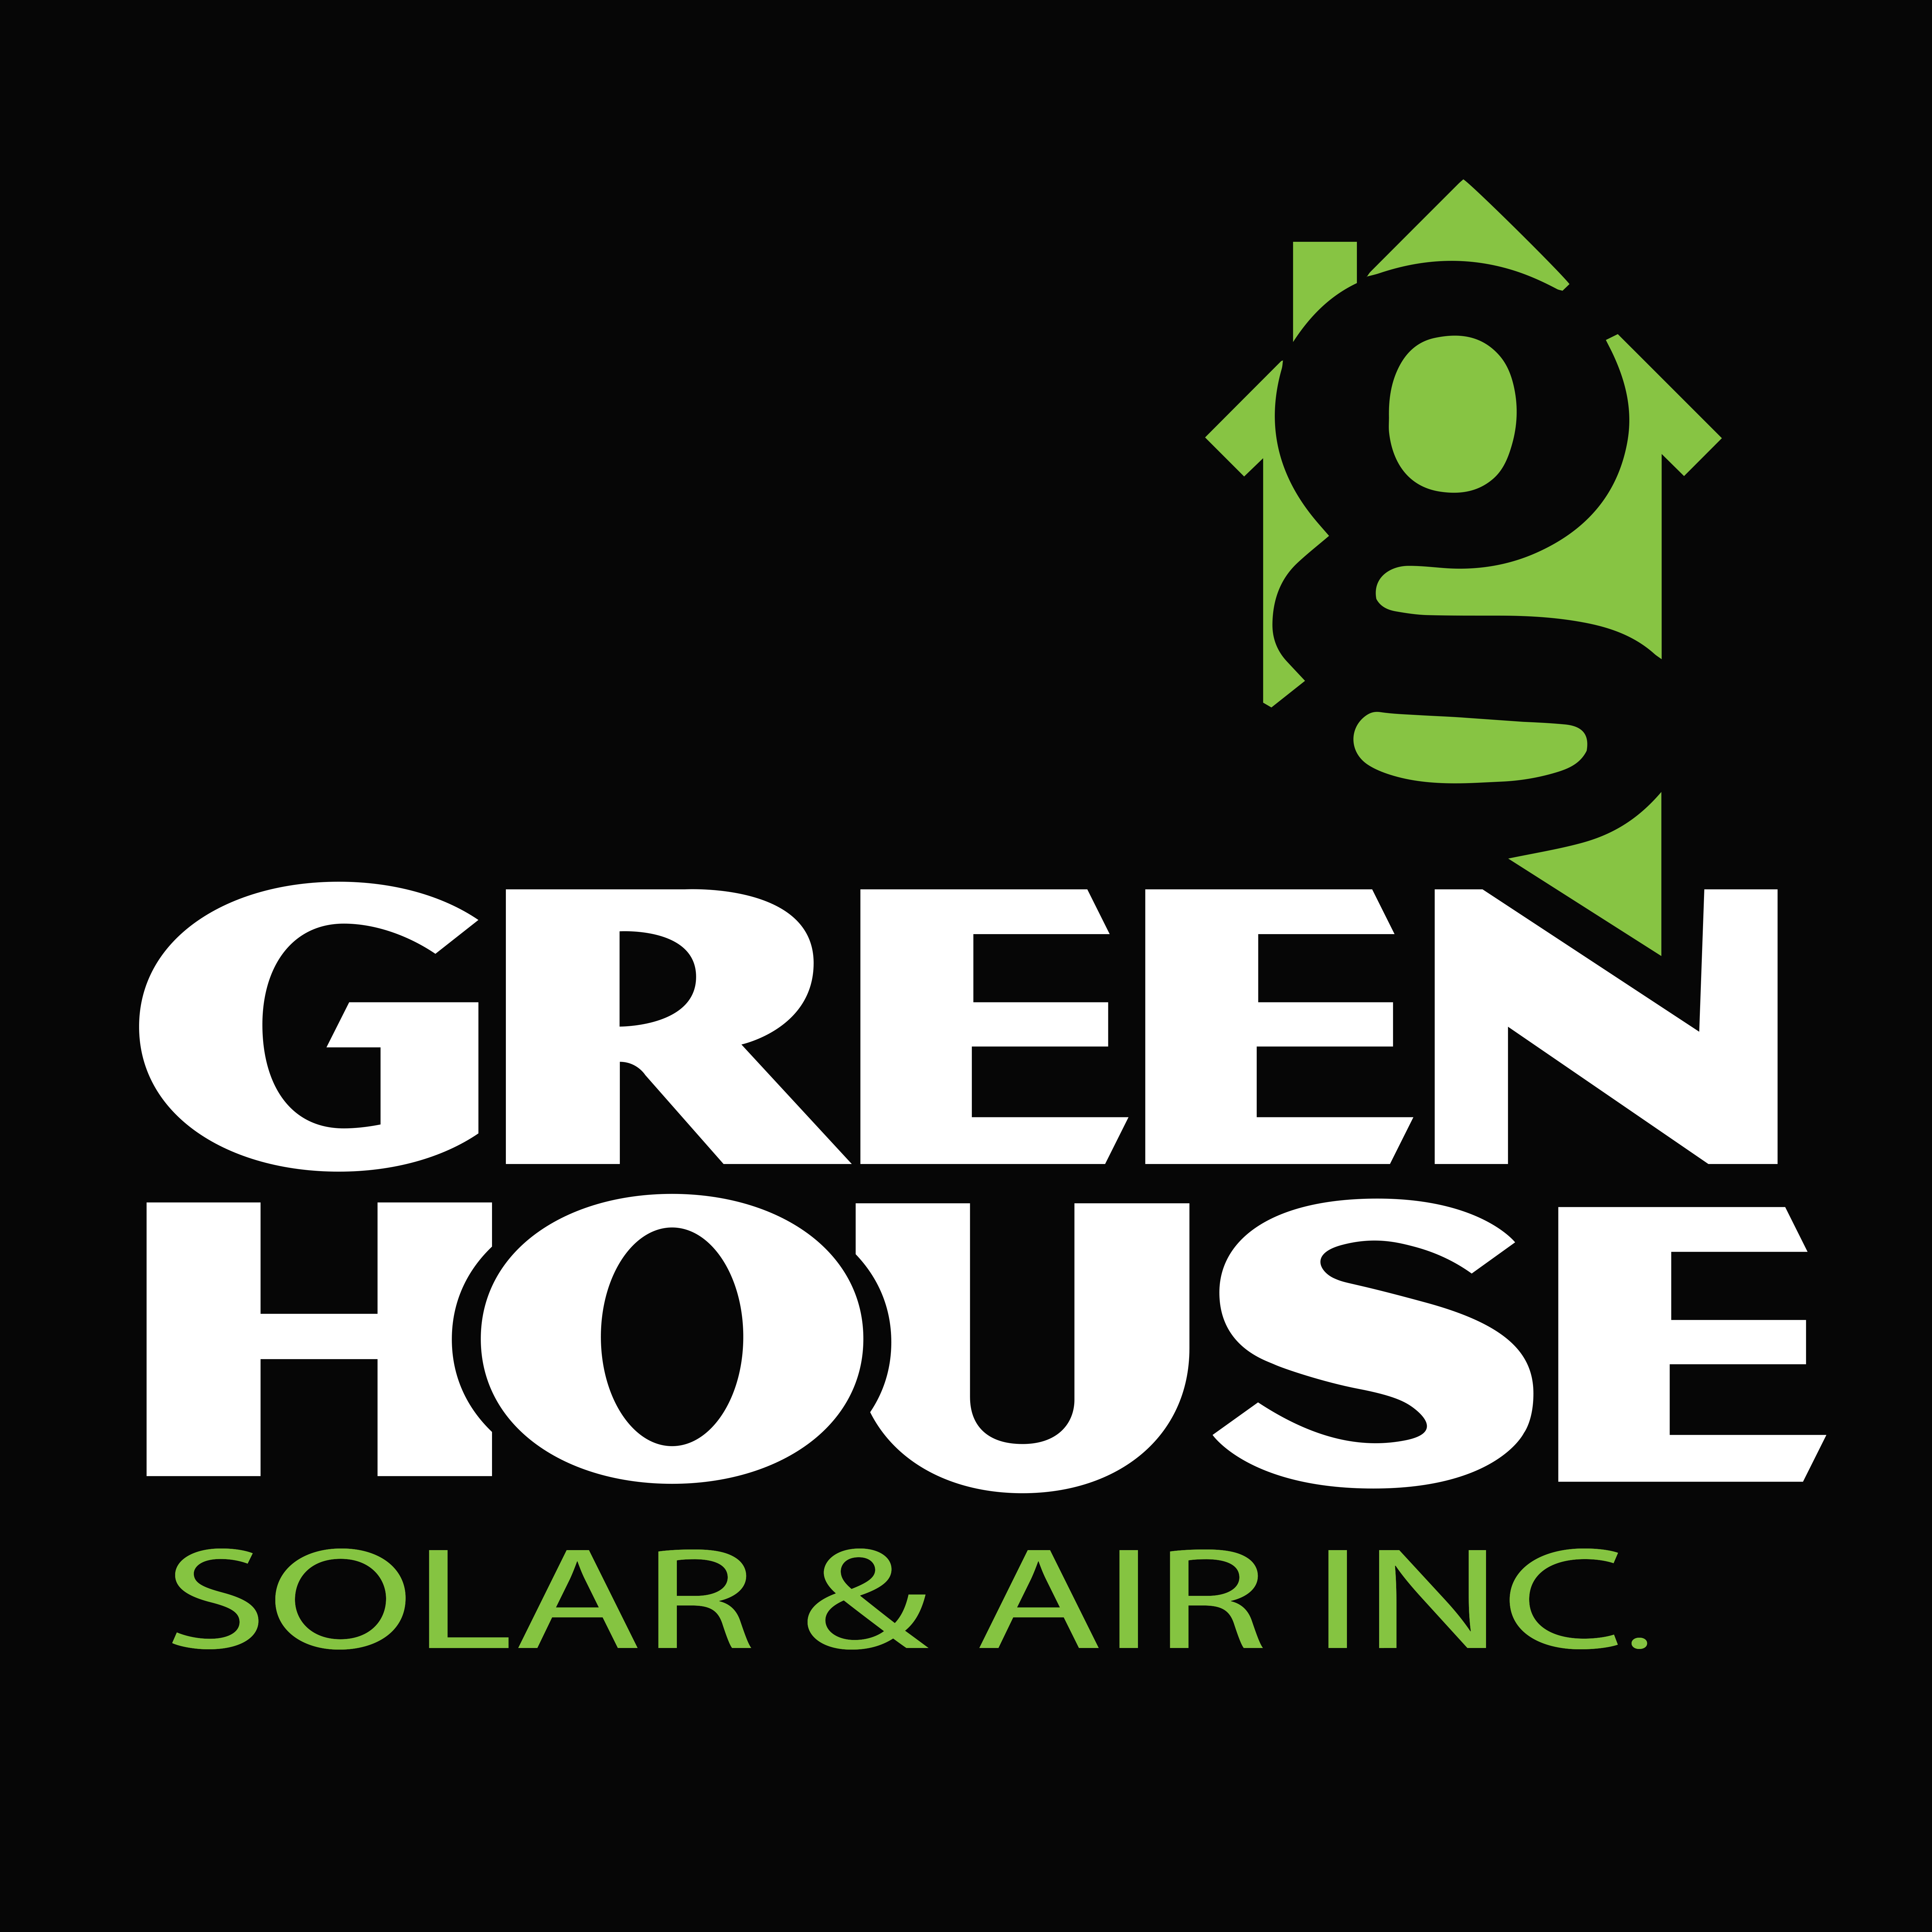 Premier Solar Installer, Green House Solar and Air Inc. Offers Affordable and Seamless Services For Homeowners and Businesses